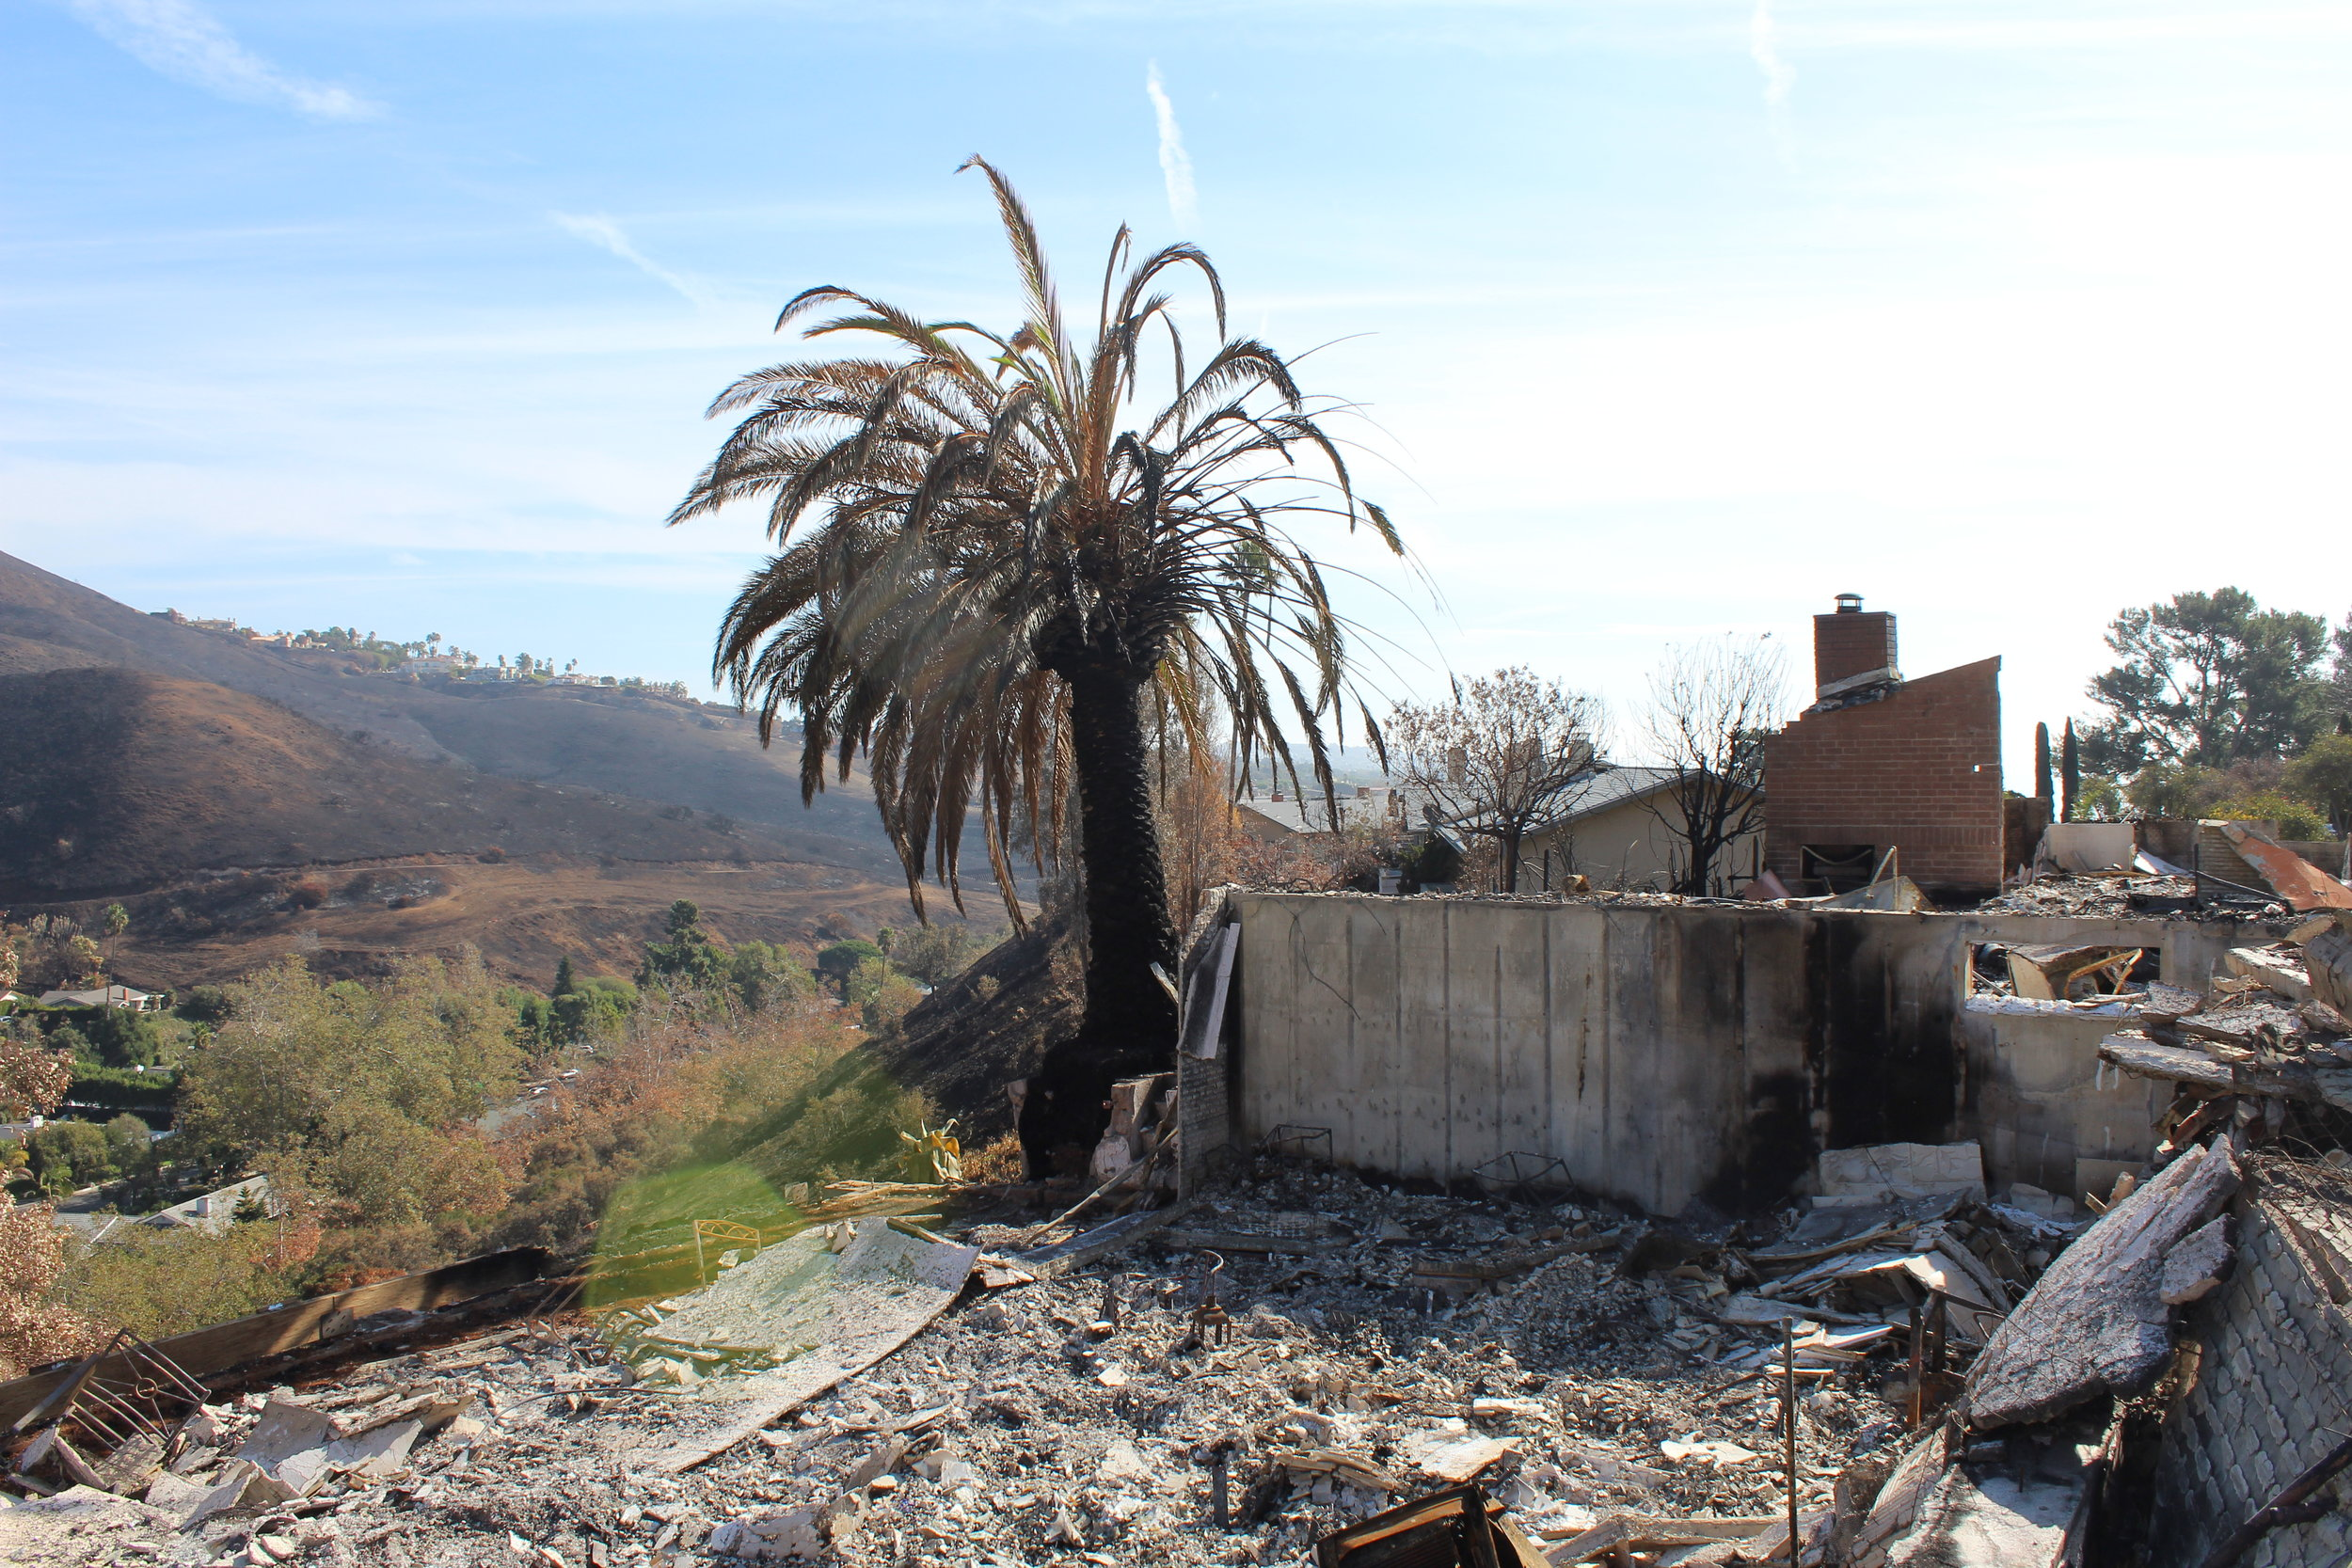 Students face financial obstacles after Woolsey - Photos Courtesy of Steve KerrMonths after the Woolsey Wildfire, Pepperdine students who lost everything face unanticipated financial obstacles while attempting to rebuild their lives.